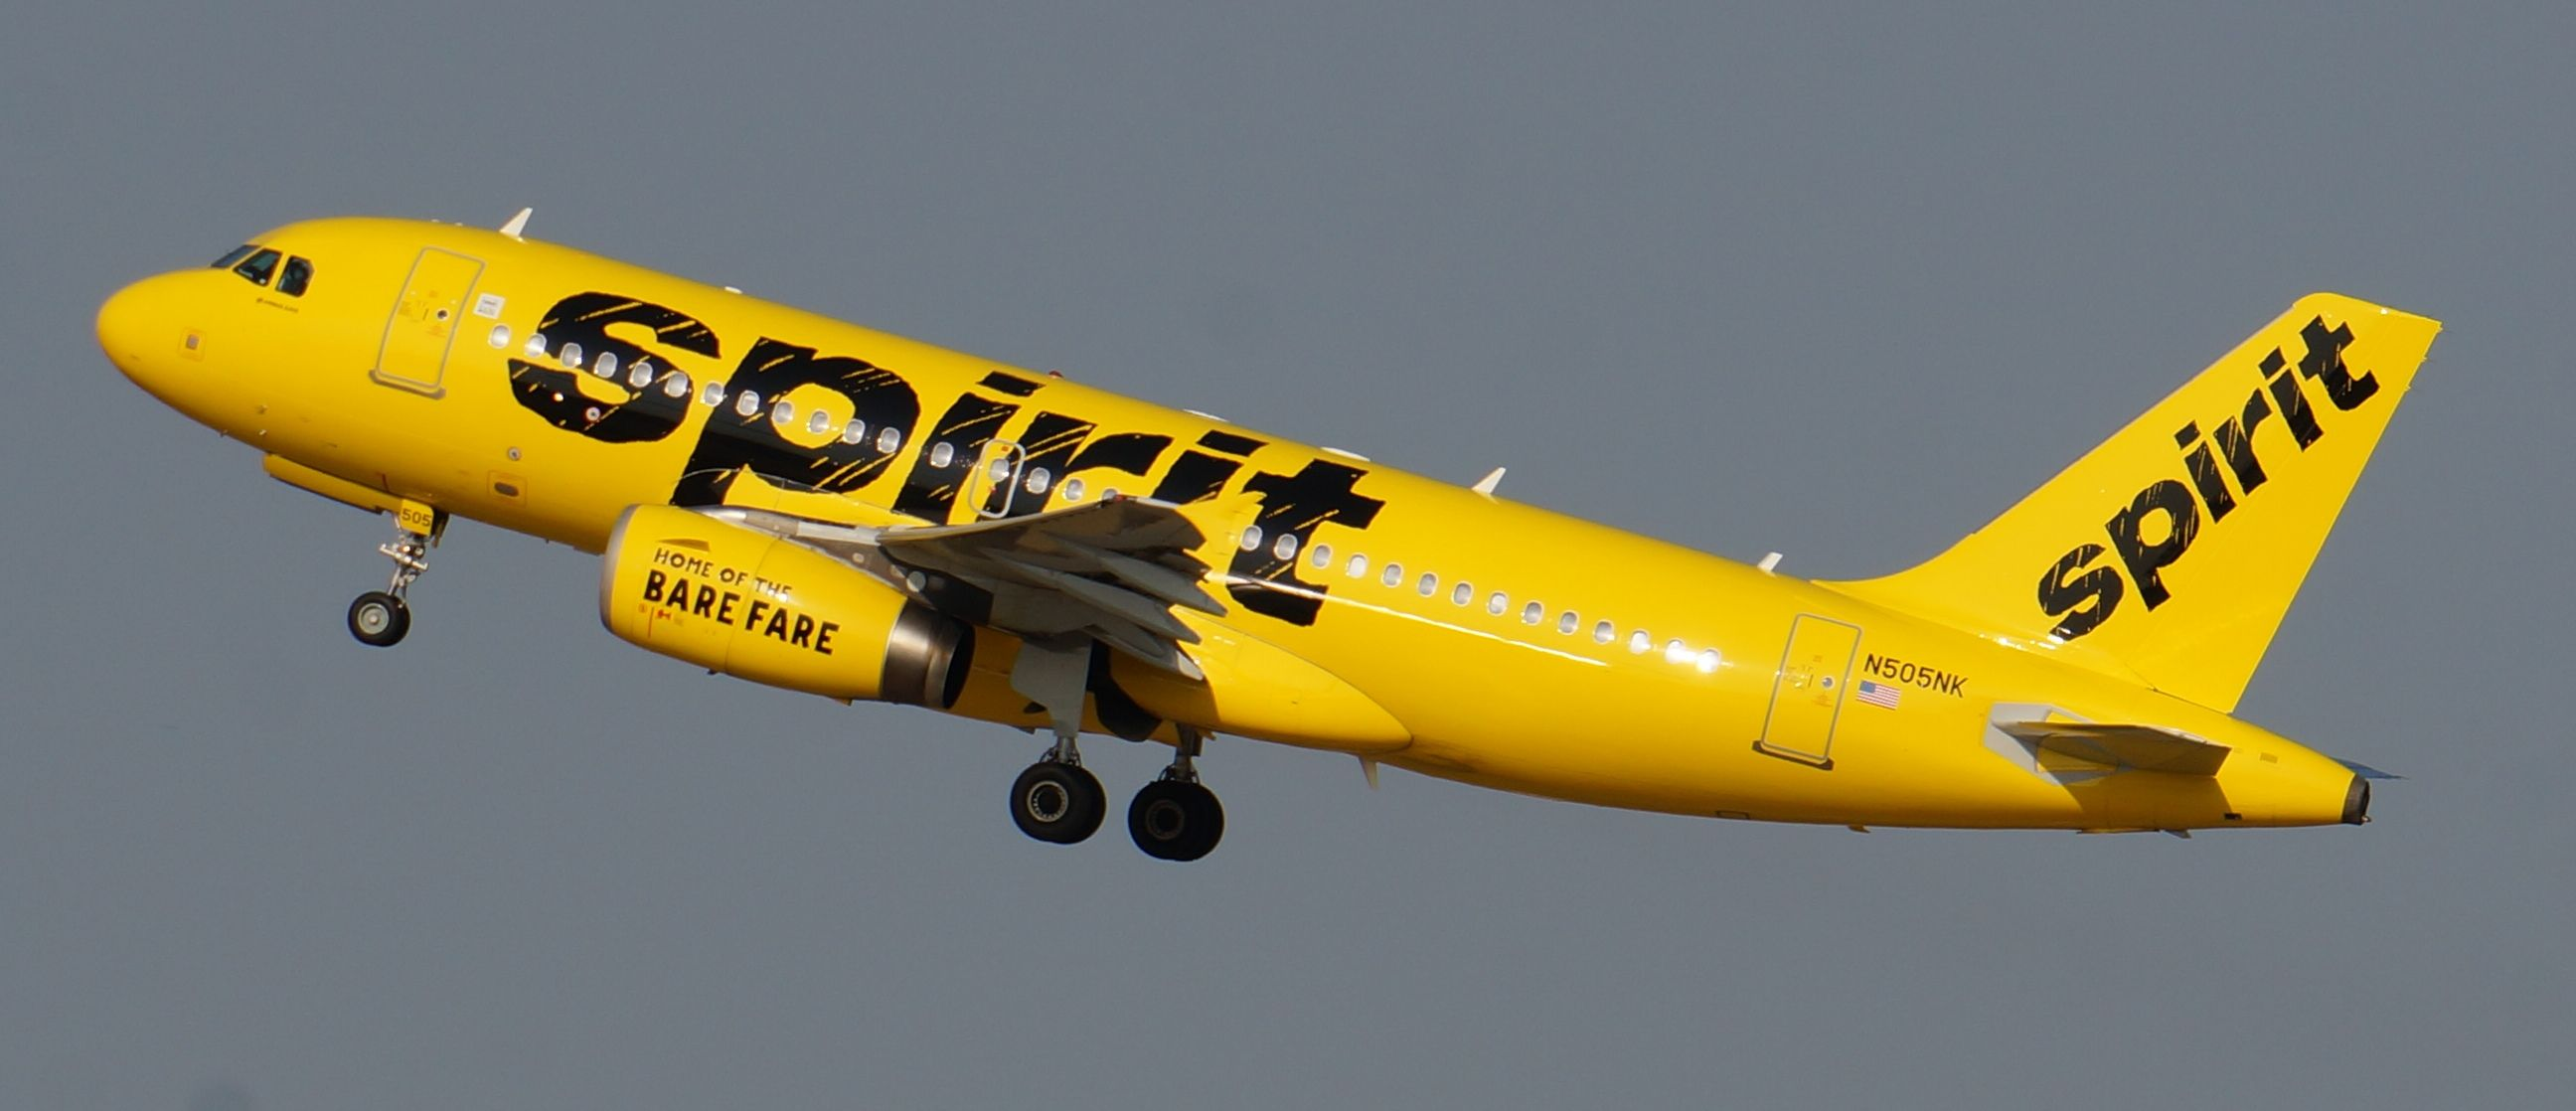 Get best offers on Spirit Airlines flight booking at